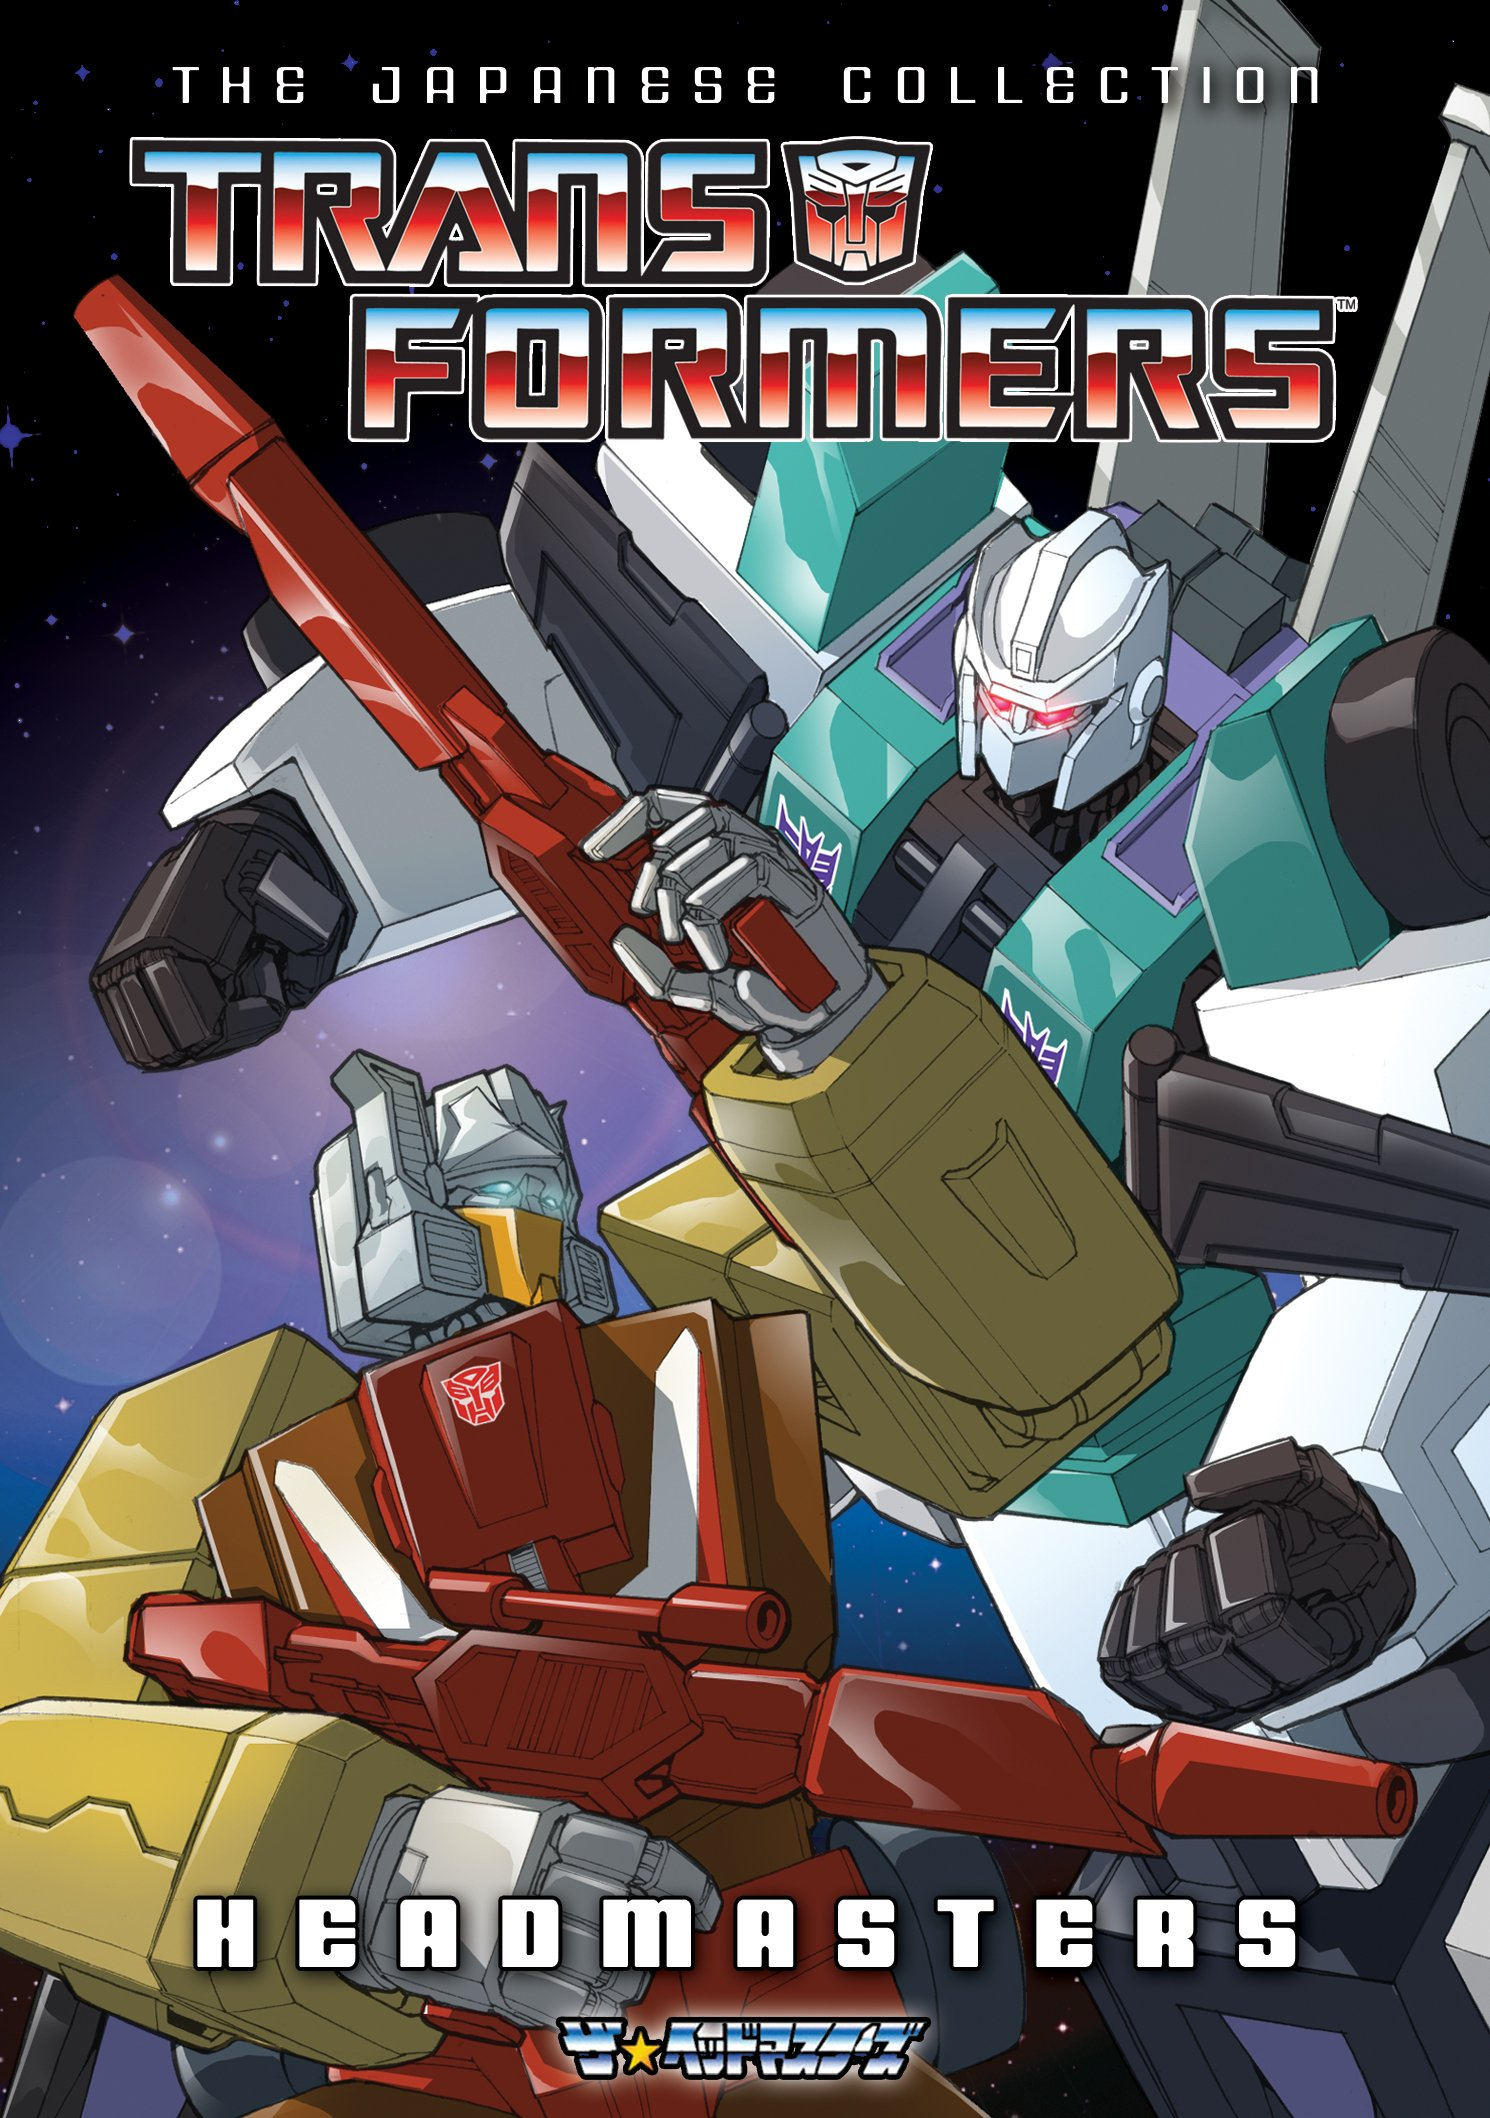 DVD : Transformers Japanese Collection: Headmasters (Full Frame, Special Packaging, 4PC)